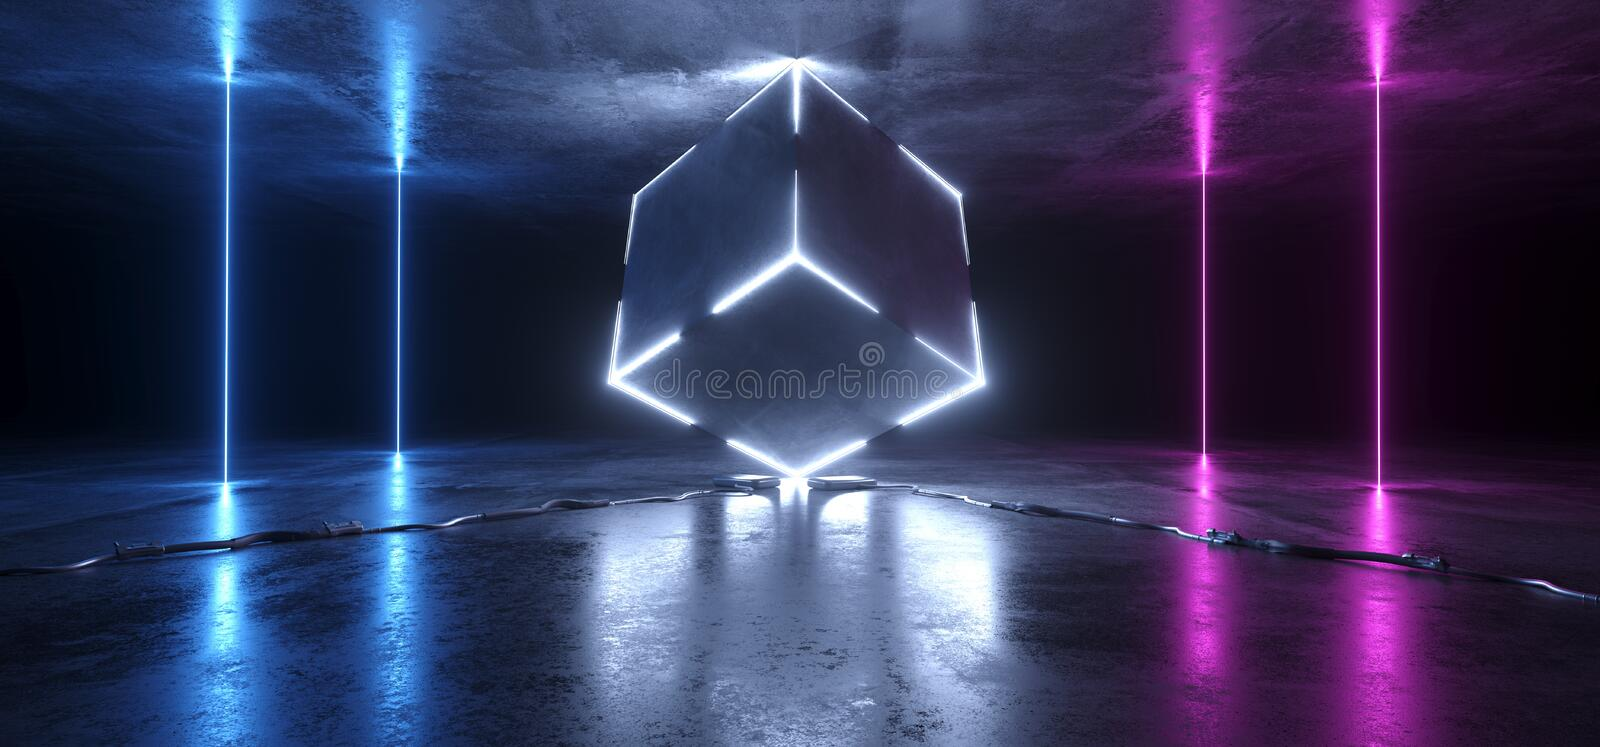 Sci Fi Neon Glowing Lights Purple Blue Background Cube Abstract Cables Plugs Laser Gate Lines Floor Lasers Studio Stage Show Night. Retro Futuristic Modern vector illustration